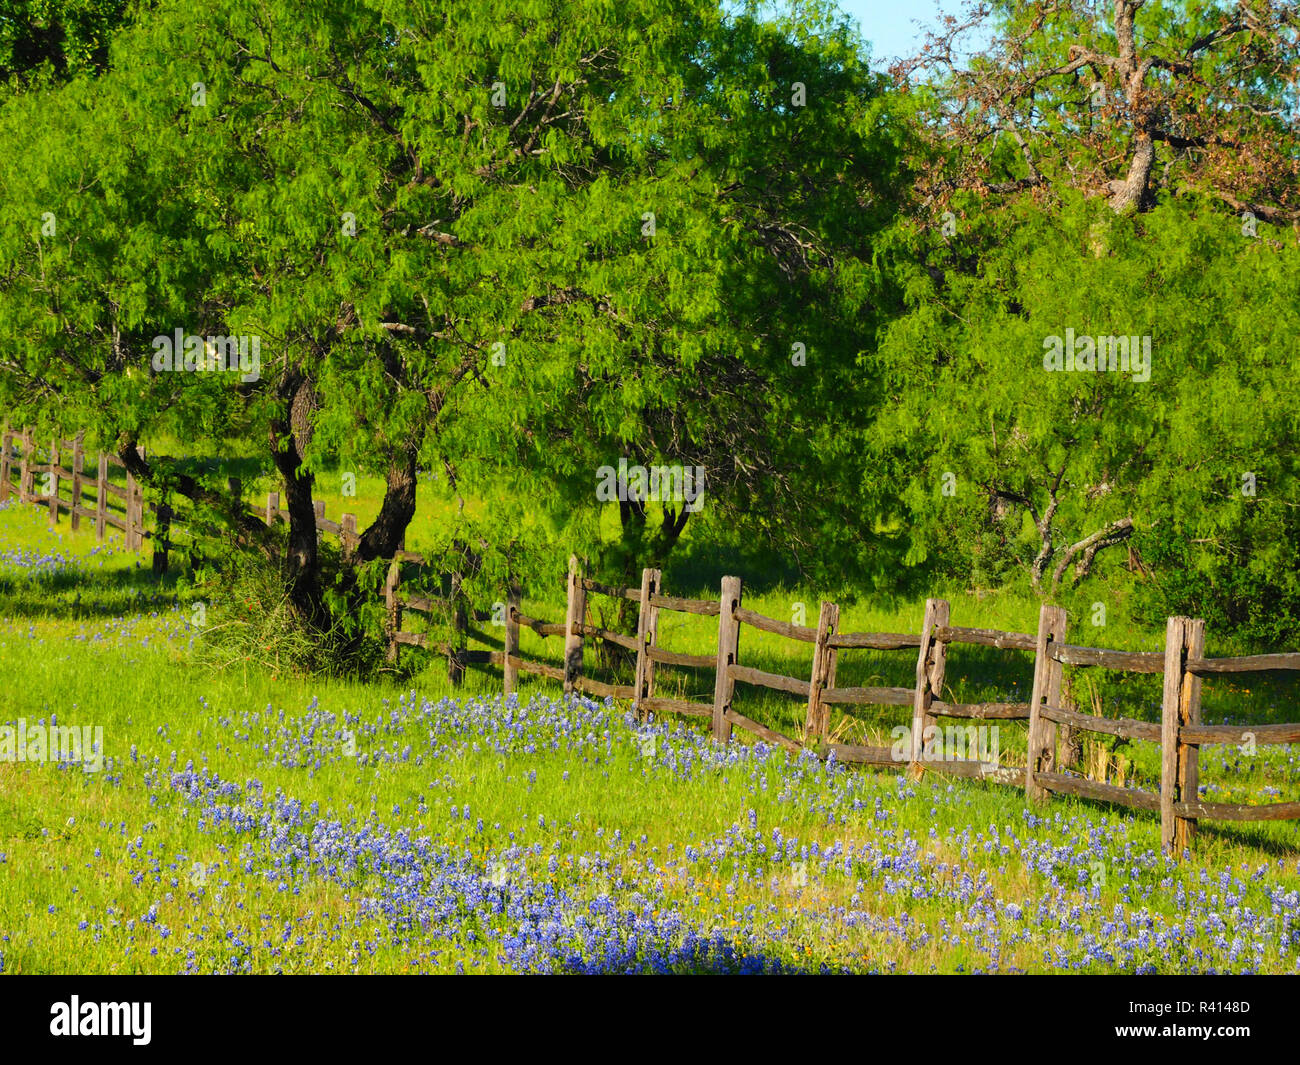 Highway 29 Stock Photos & Highway 29 Stock Images - Alamy